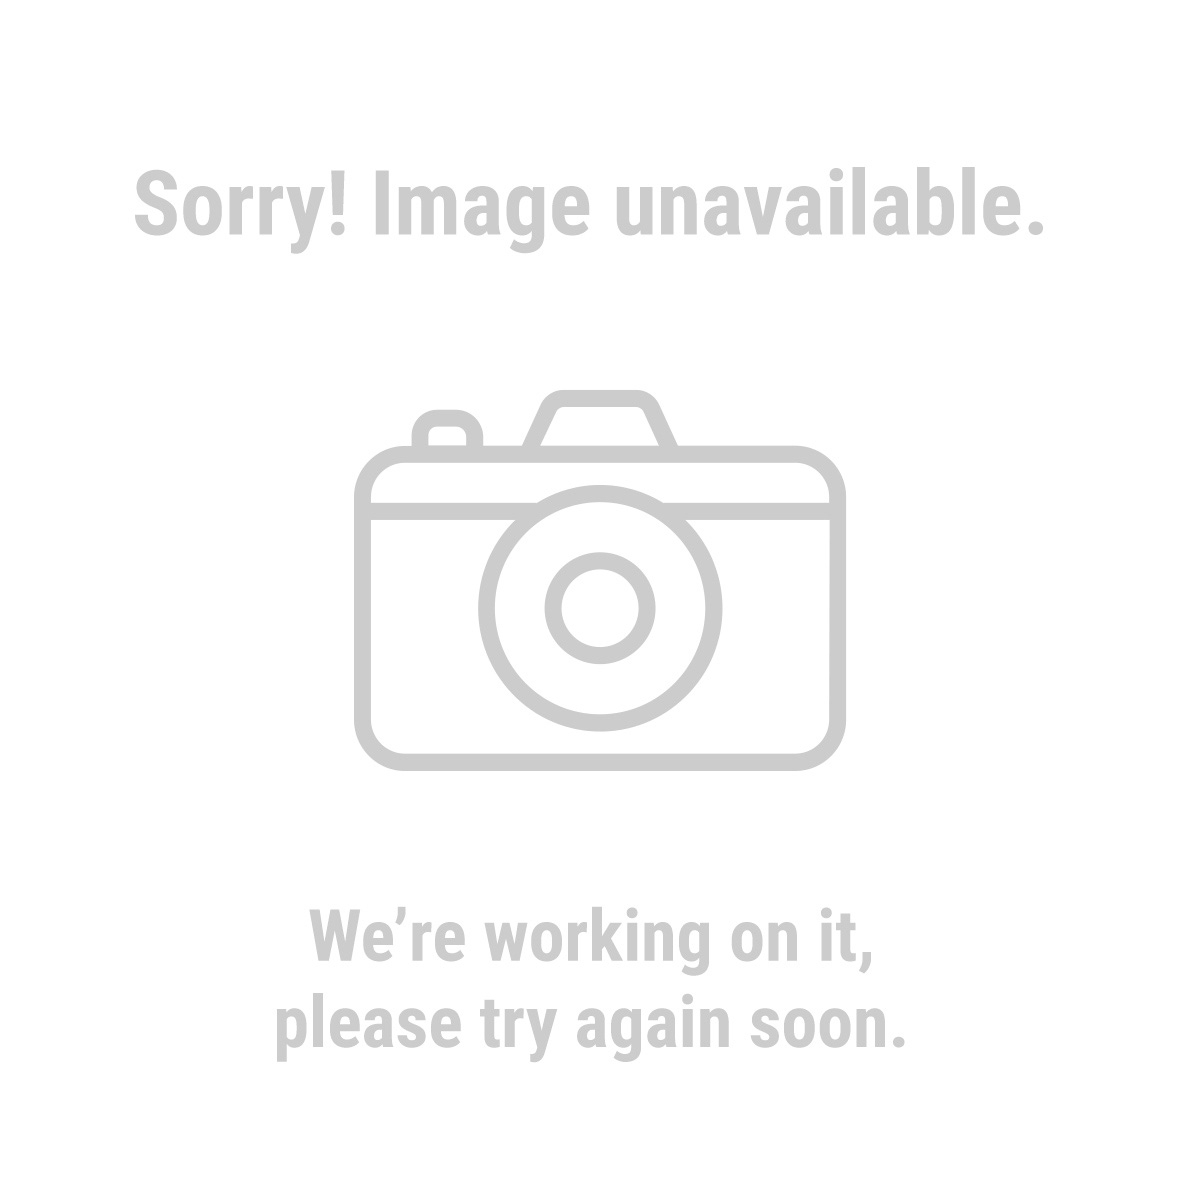 Krause & Becker 61498 3 in. Chip Brush